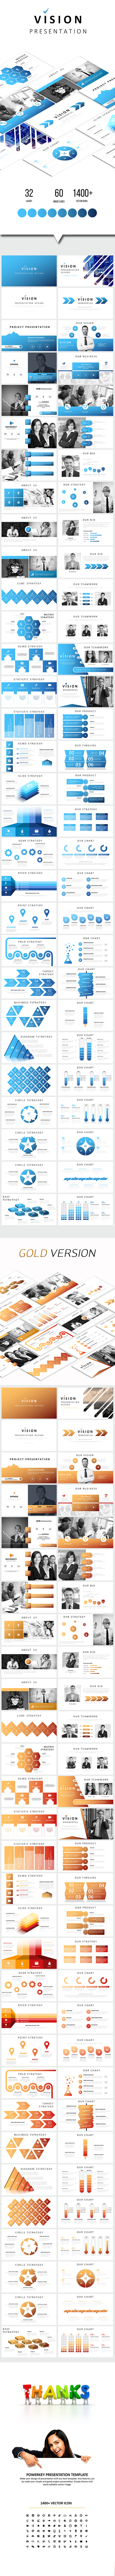 VISION - Multipurpose Keynote Template - Business Keynote Templates